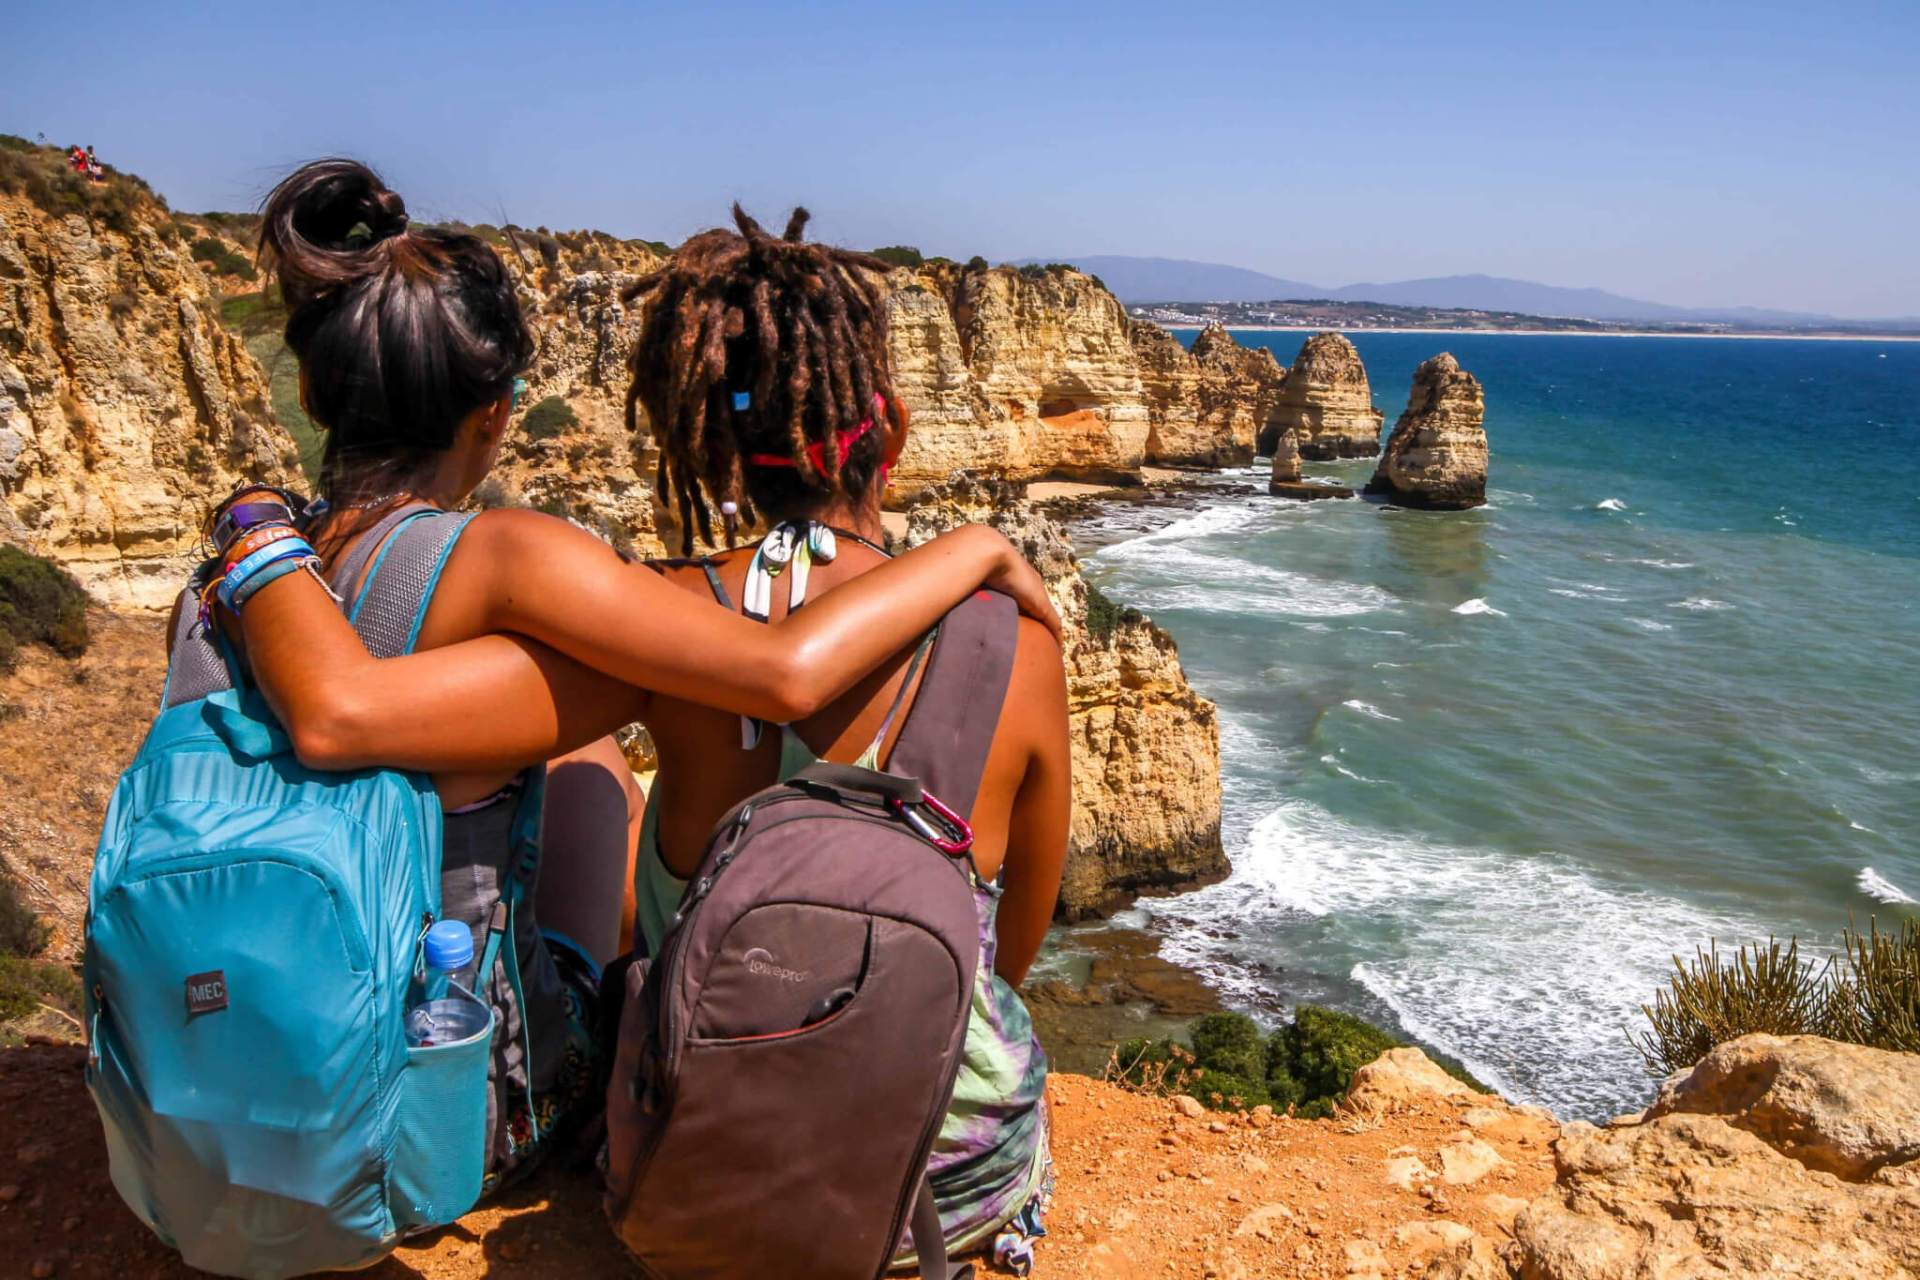 The Black Woman's Guide to Solo Traveling